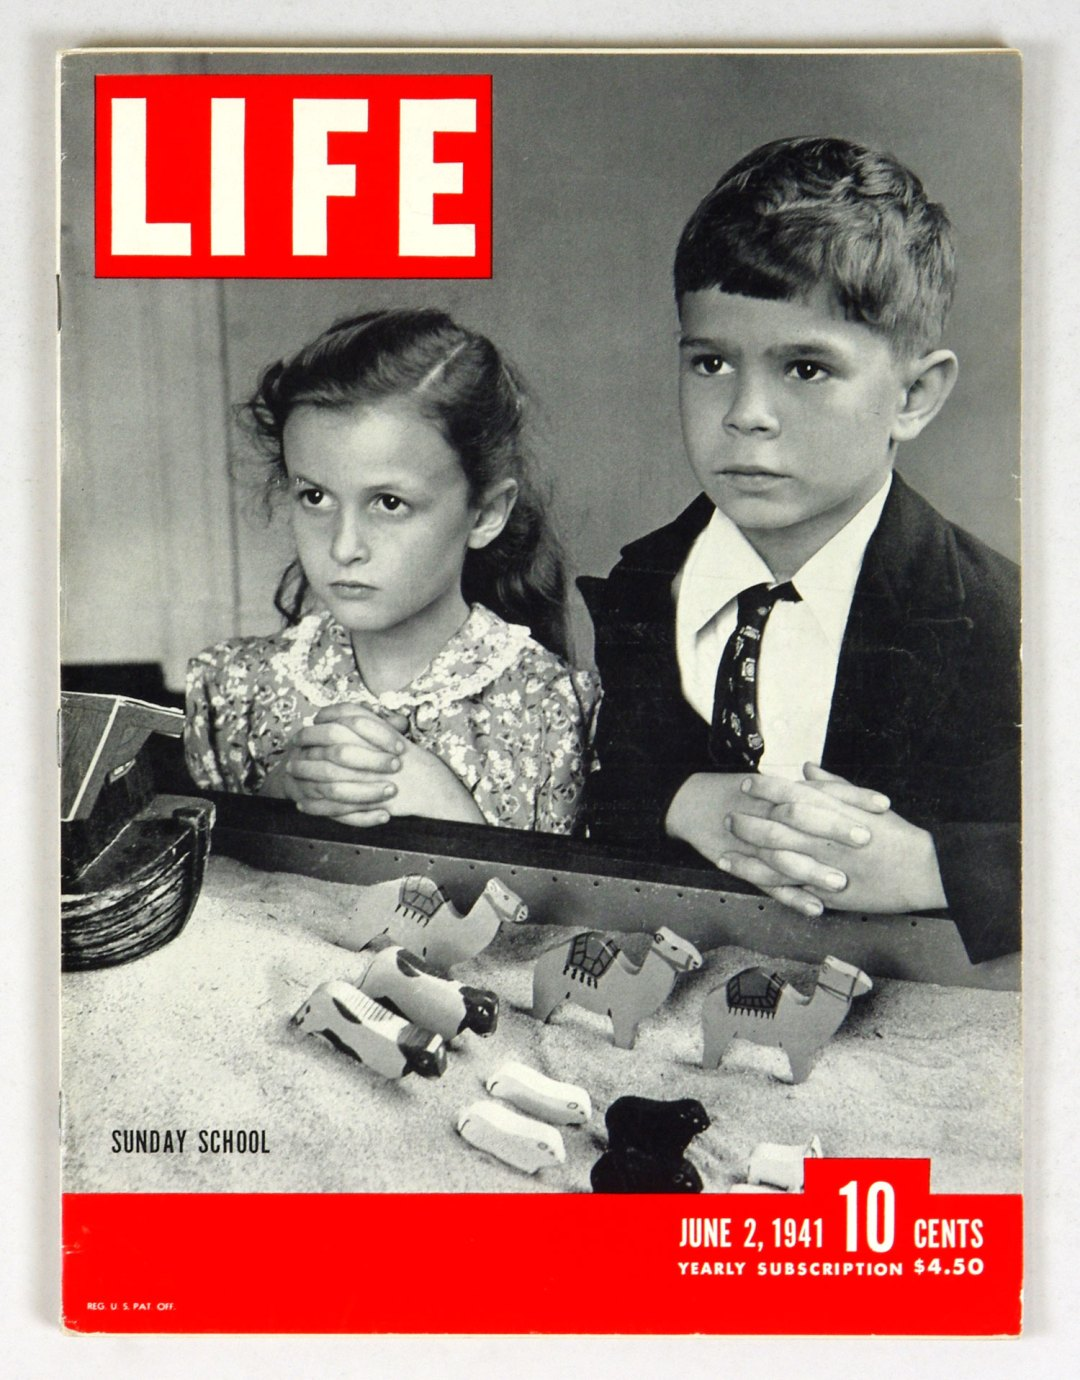 LIFE Magazine 1941 June 2 Sunday School